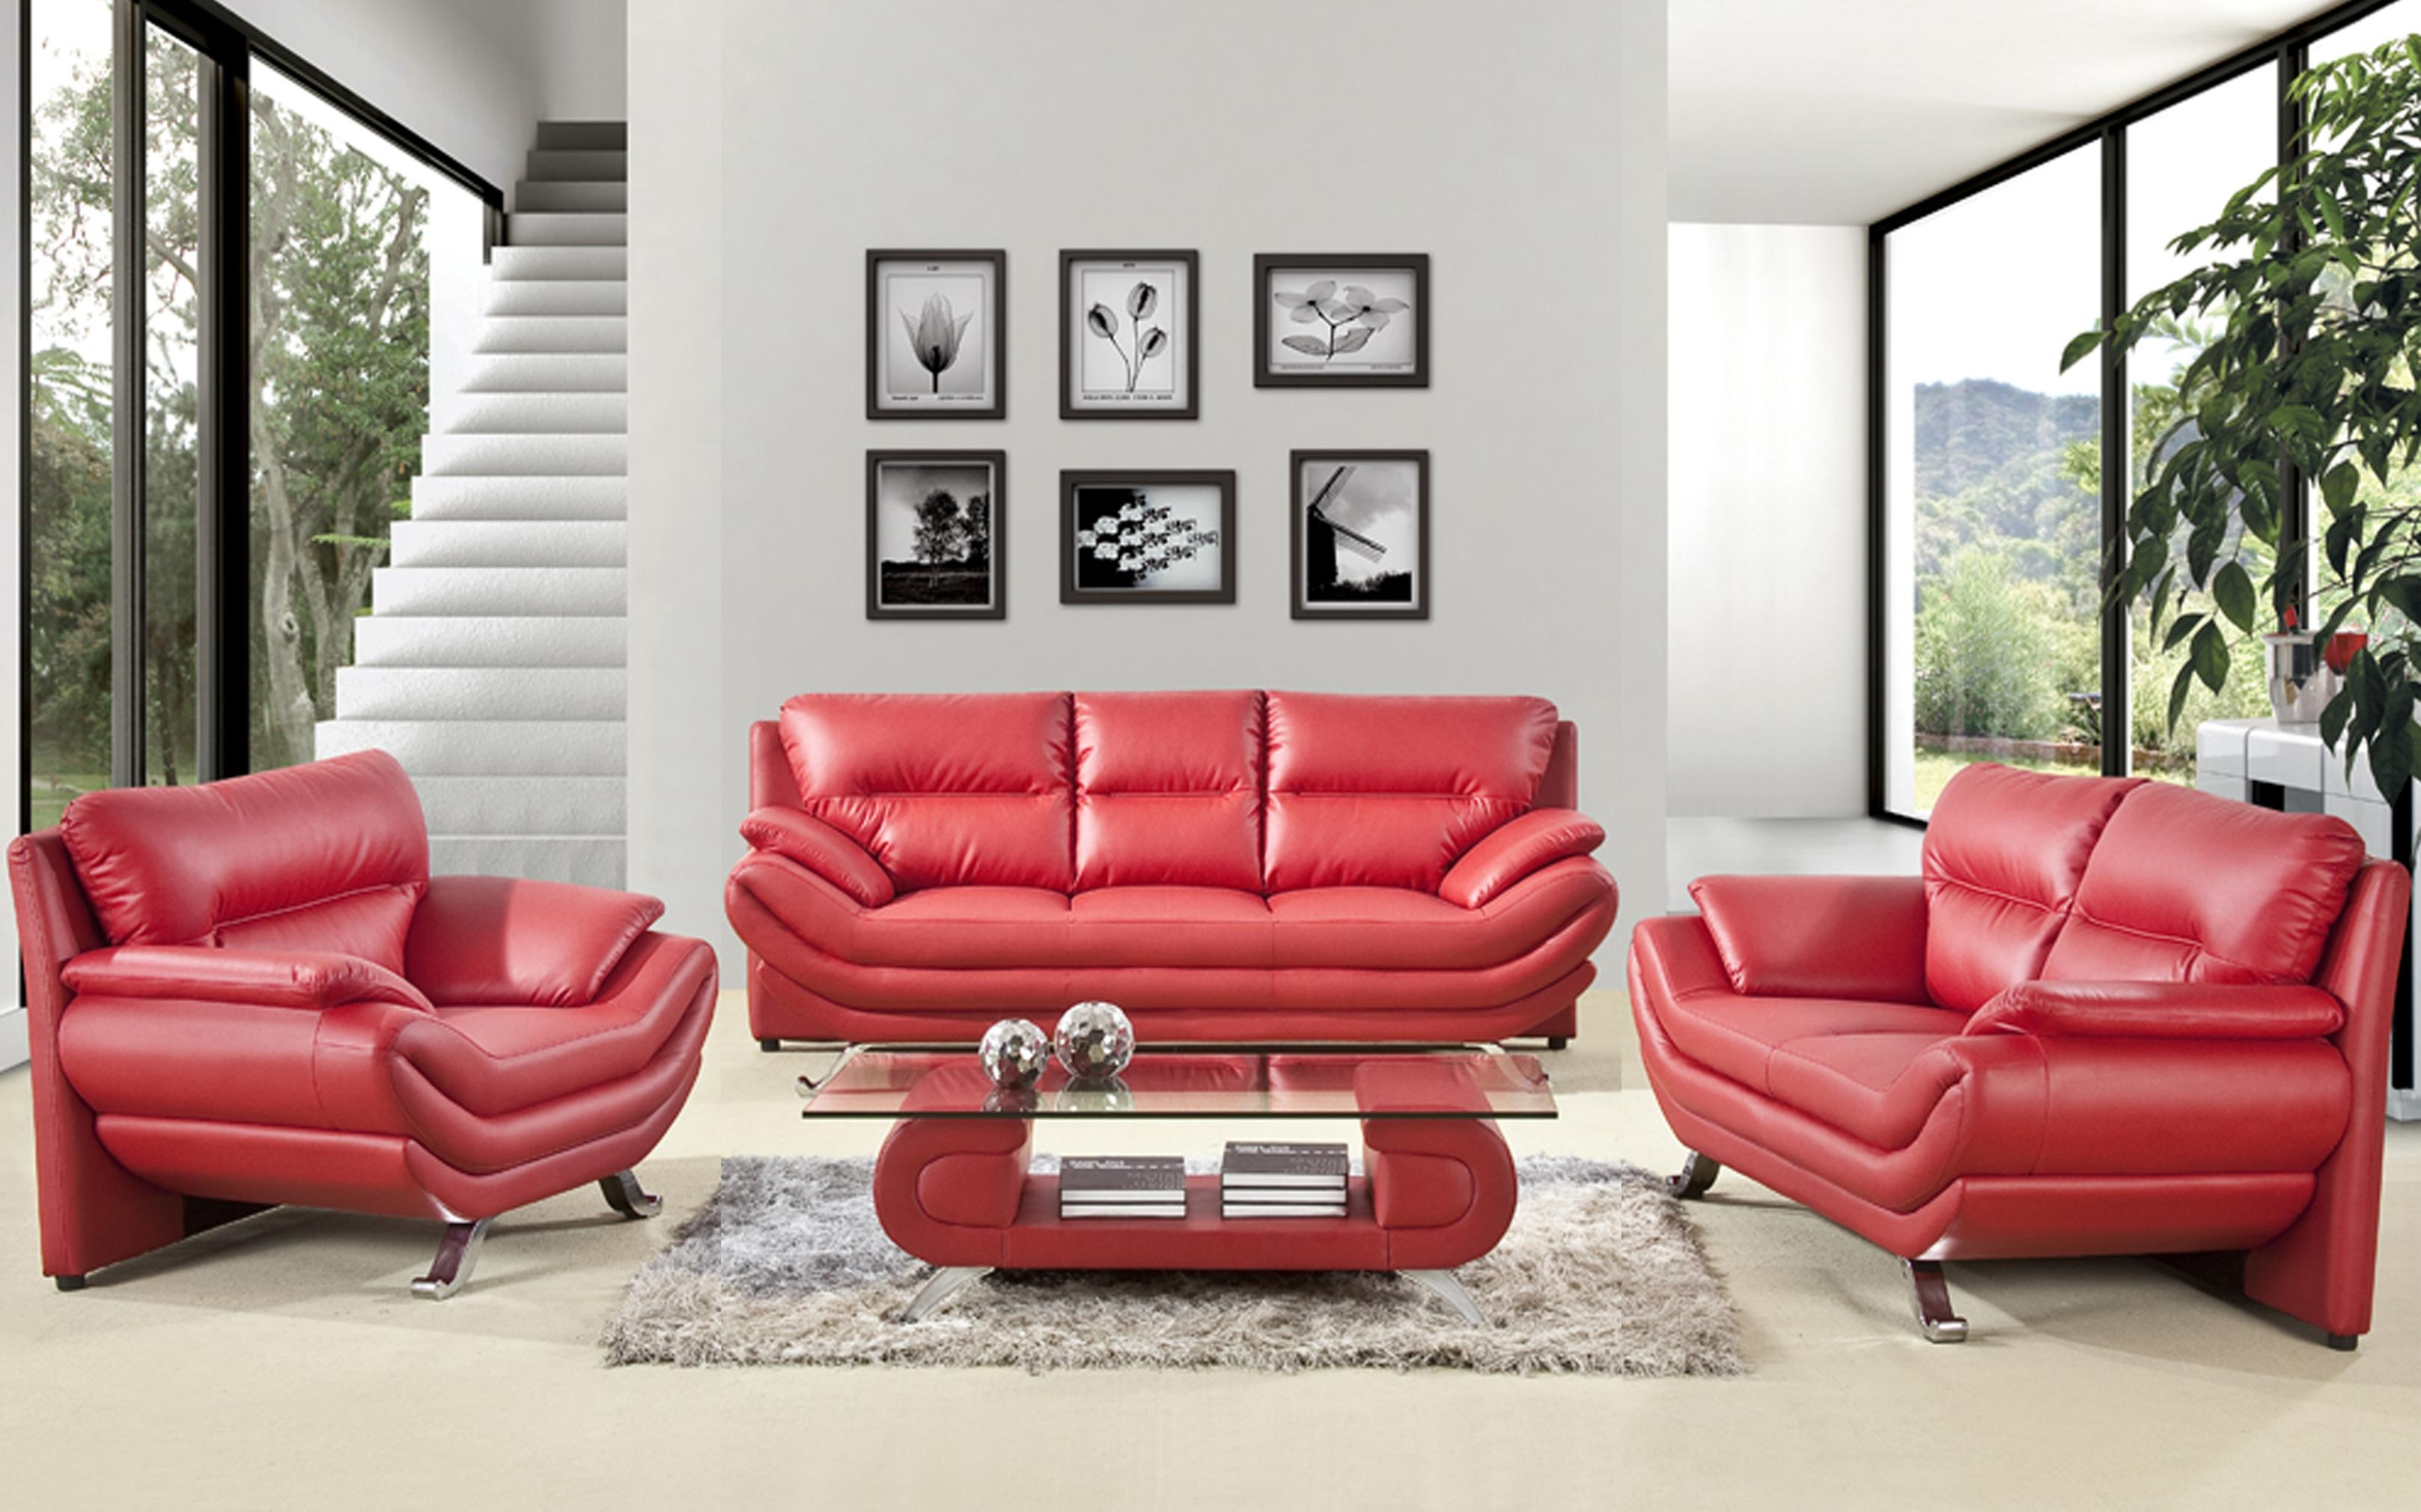 20 top black and red sofa sets sofa ideas for Black red and grey living room ideas